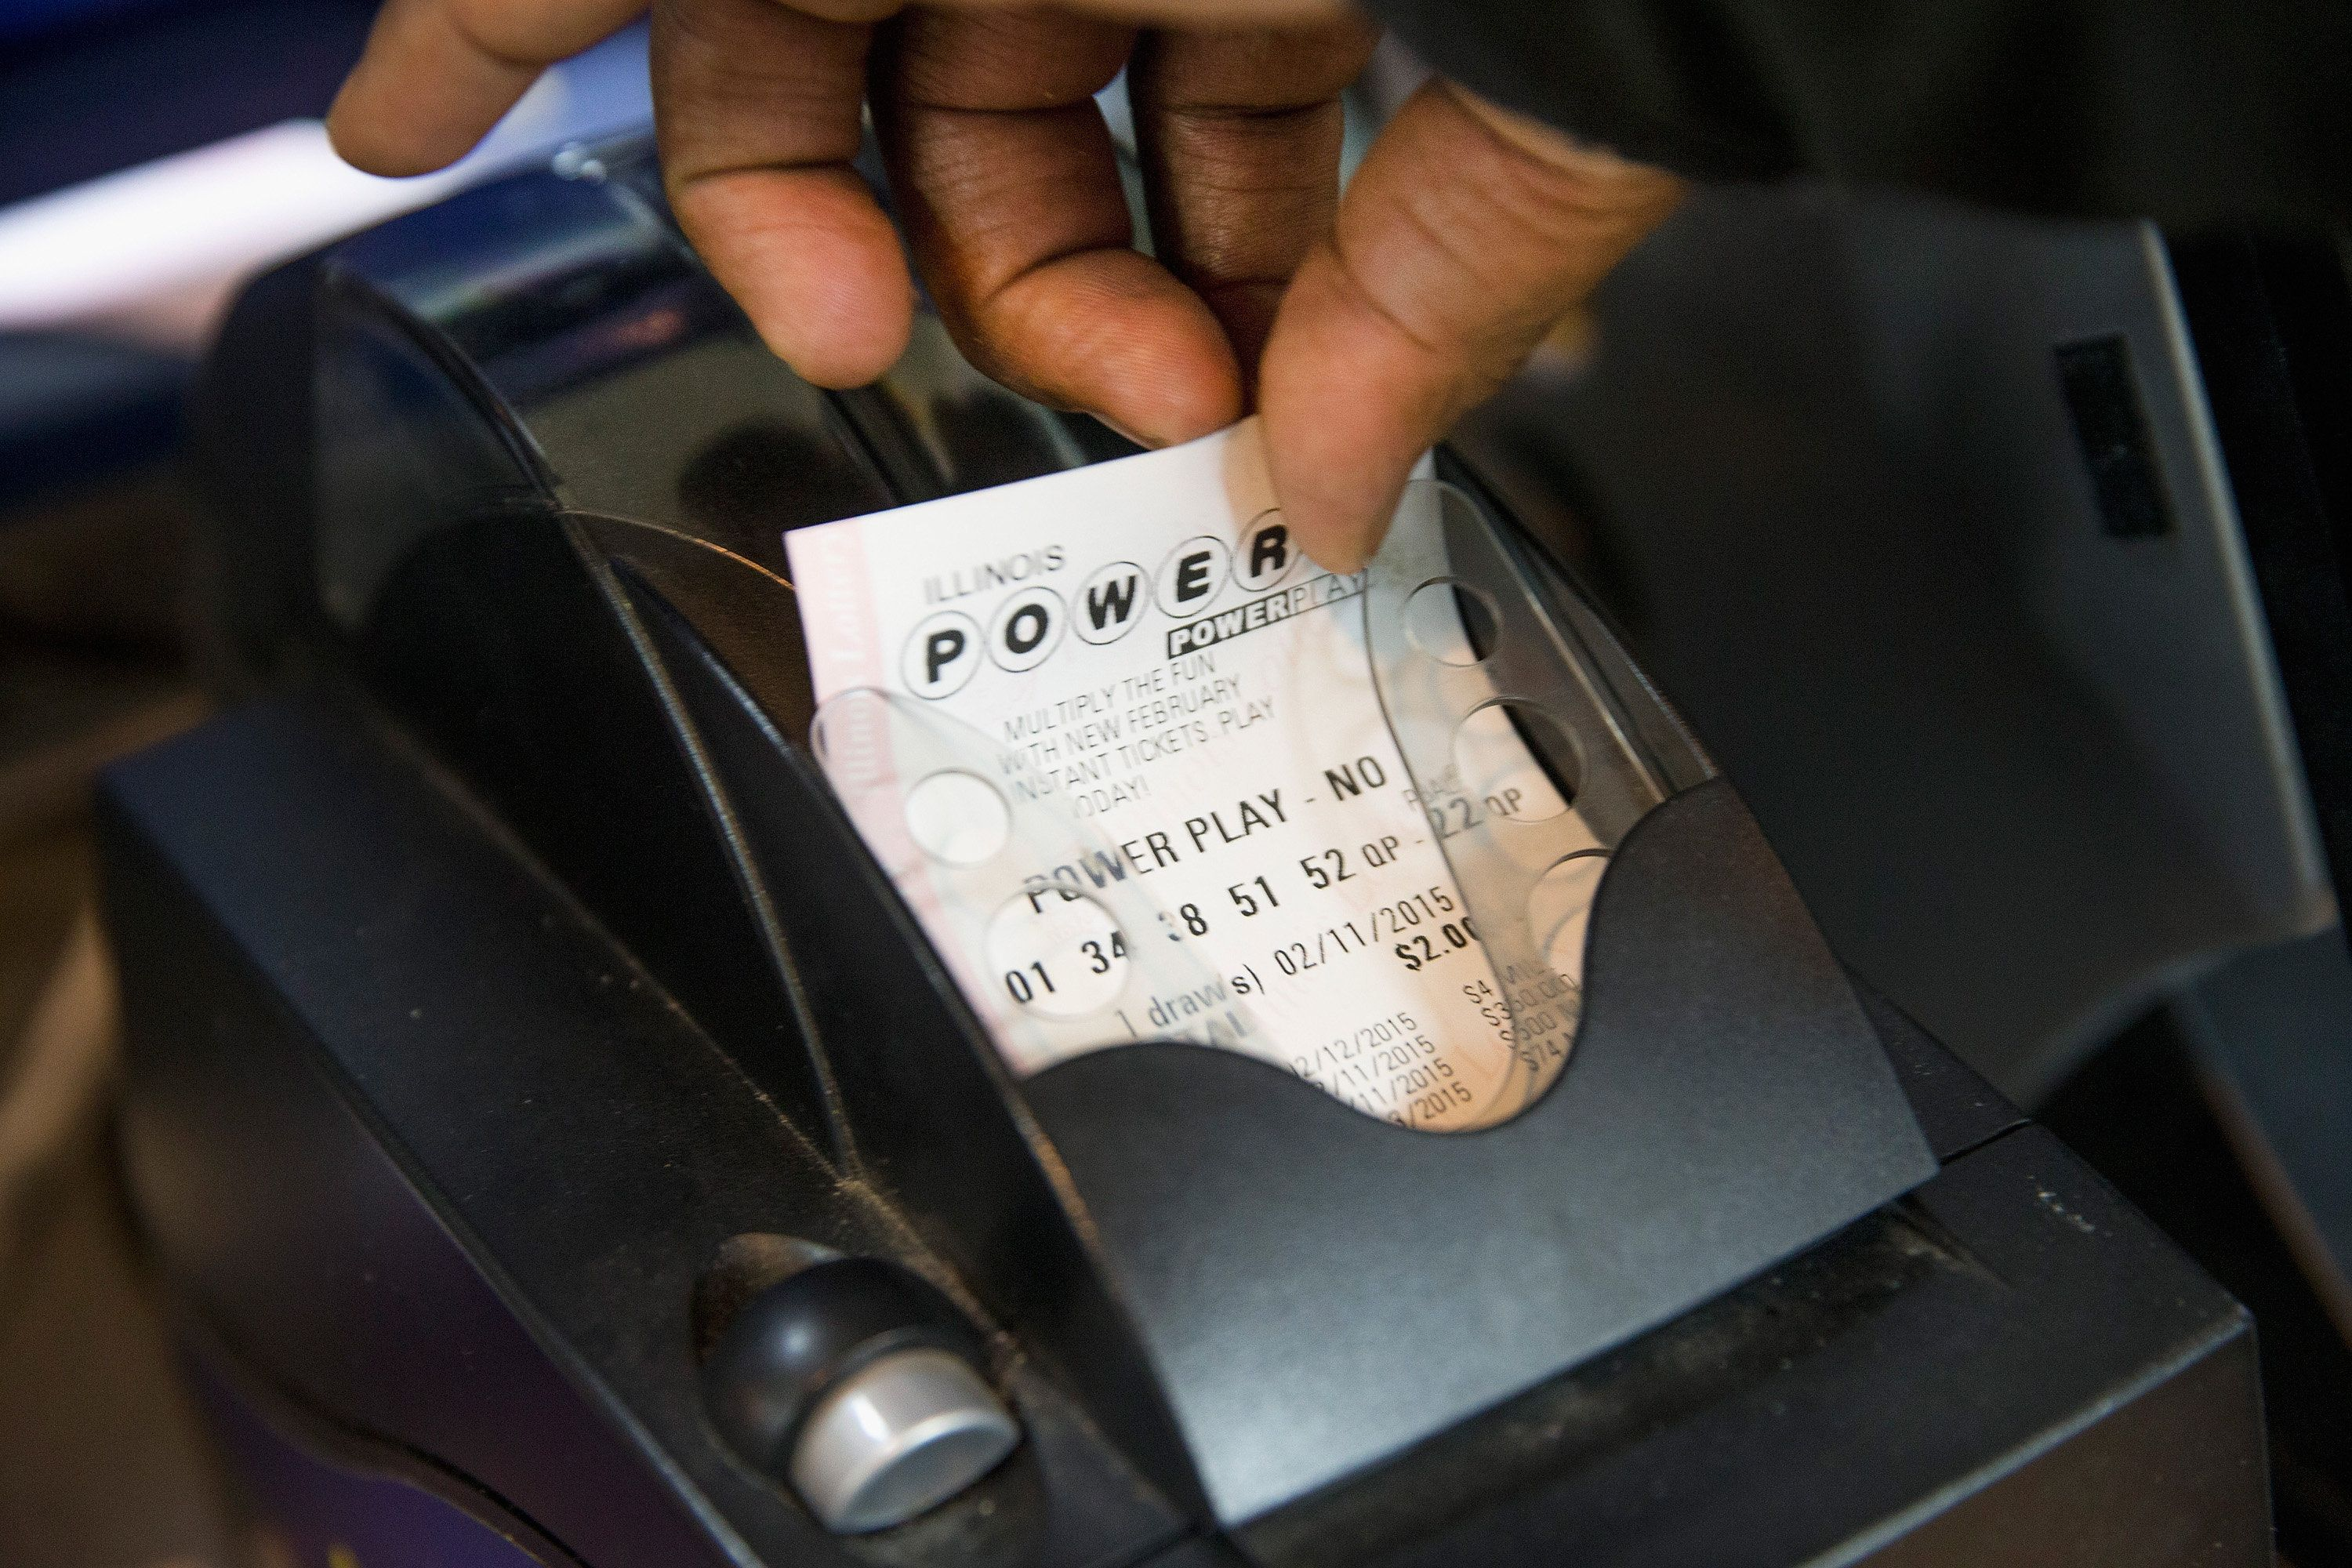 CHICAGO, IL - FEBRUARY 11:  A Powerball lottery ticket is printed for a customer at a 7-Eleven store on February 11, 2015 in Chicago, Illinois. Ticket sales have caused the jackpot to grow $500 million, one of the largest in the game's history.  (Photo by Scott Olson/Getty Images)